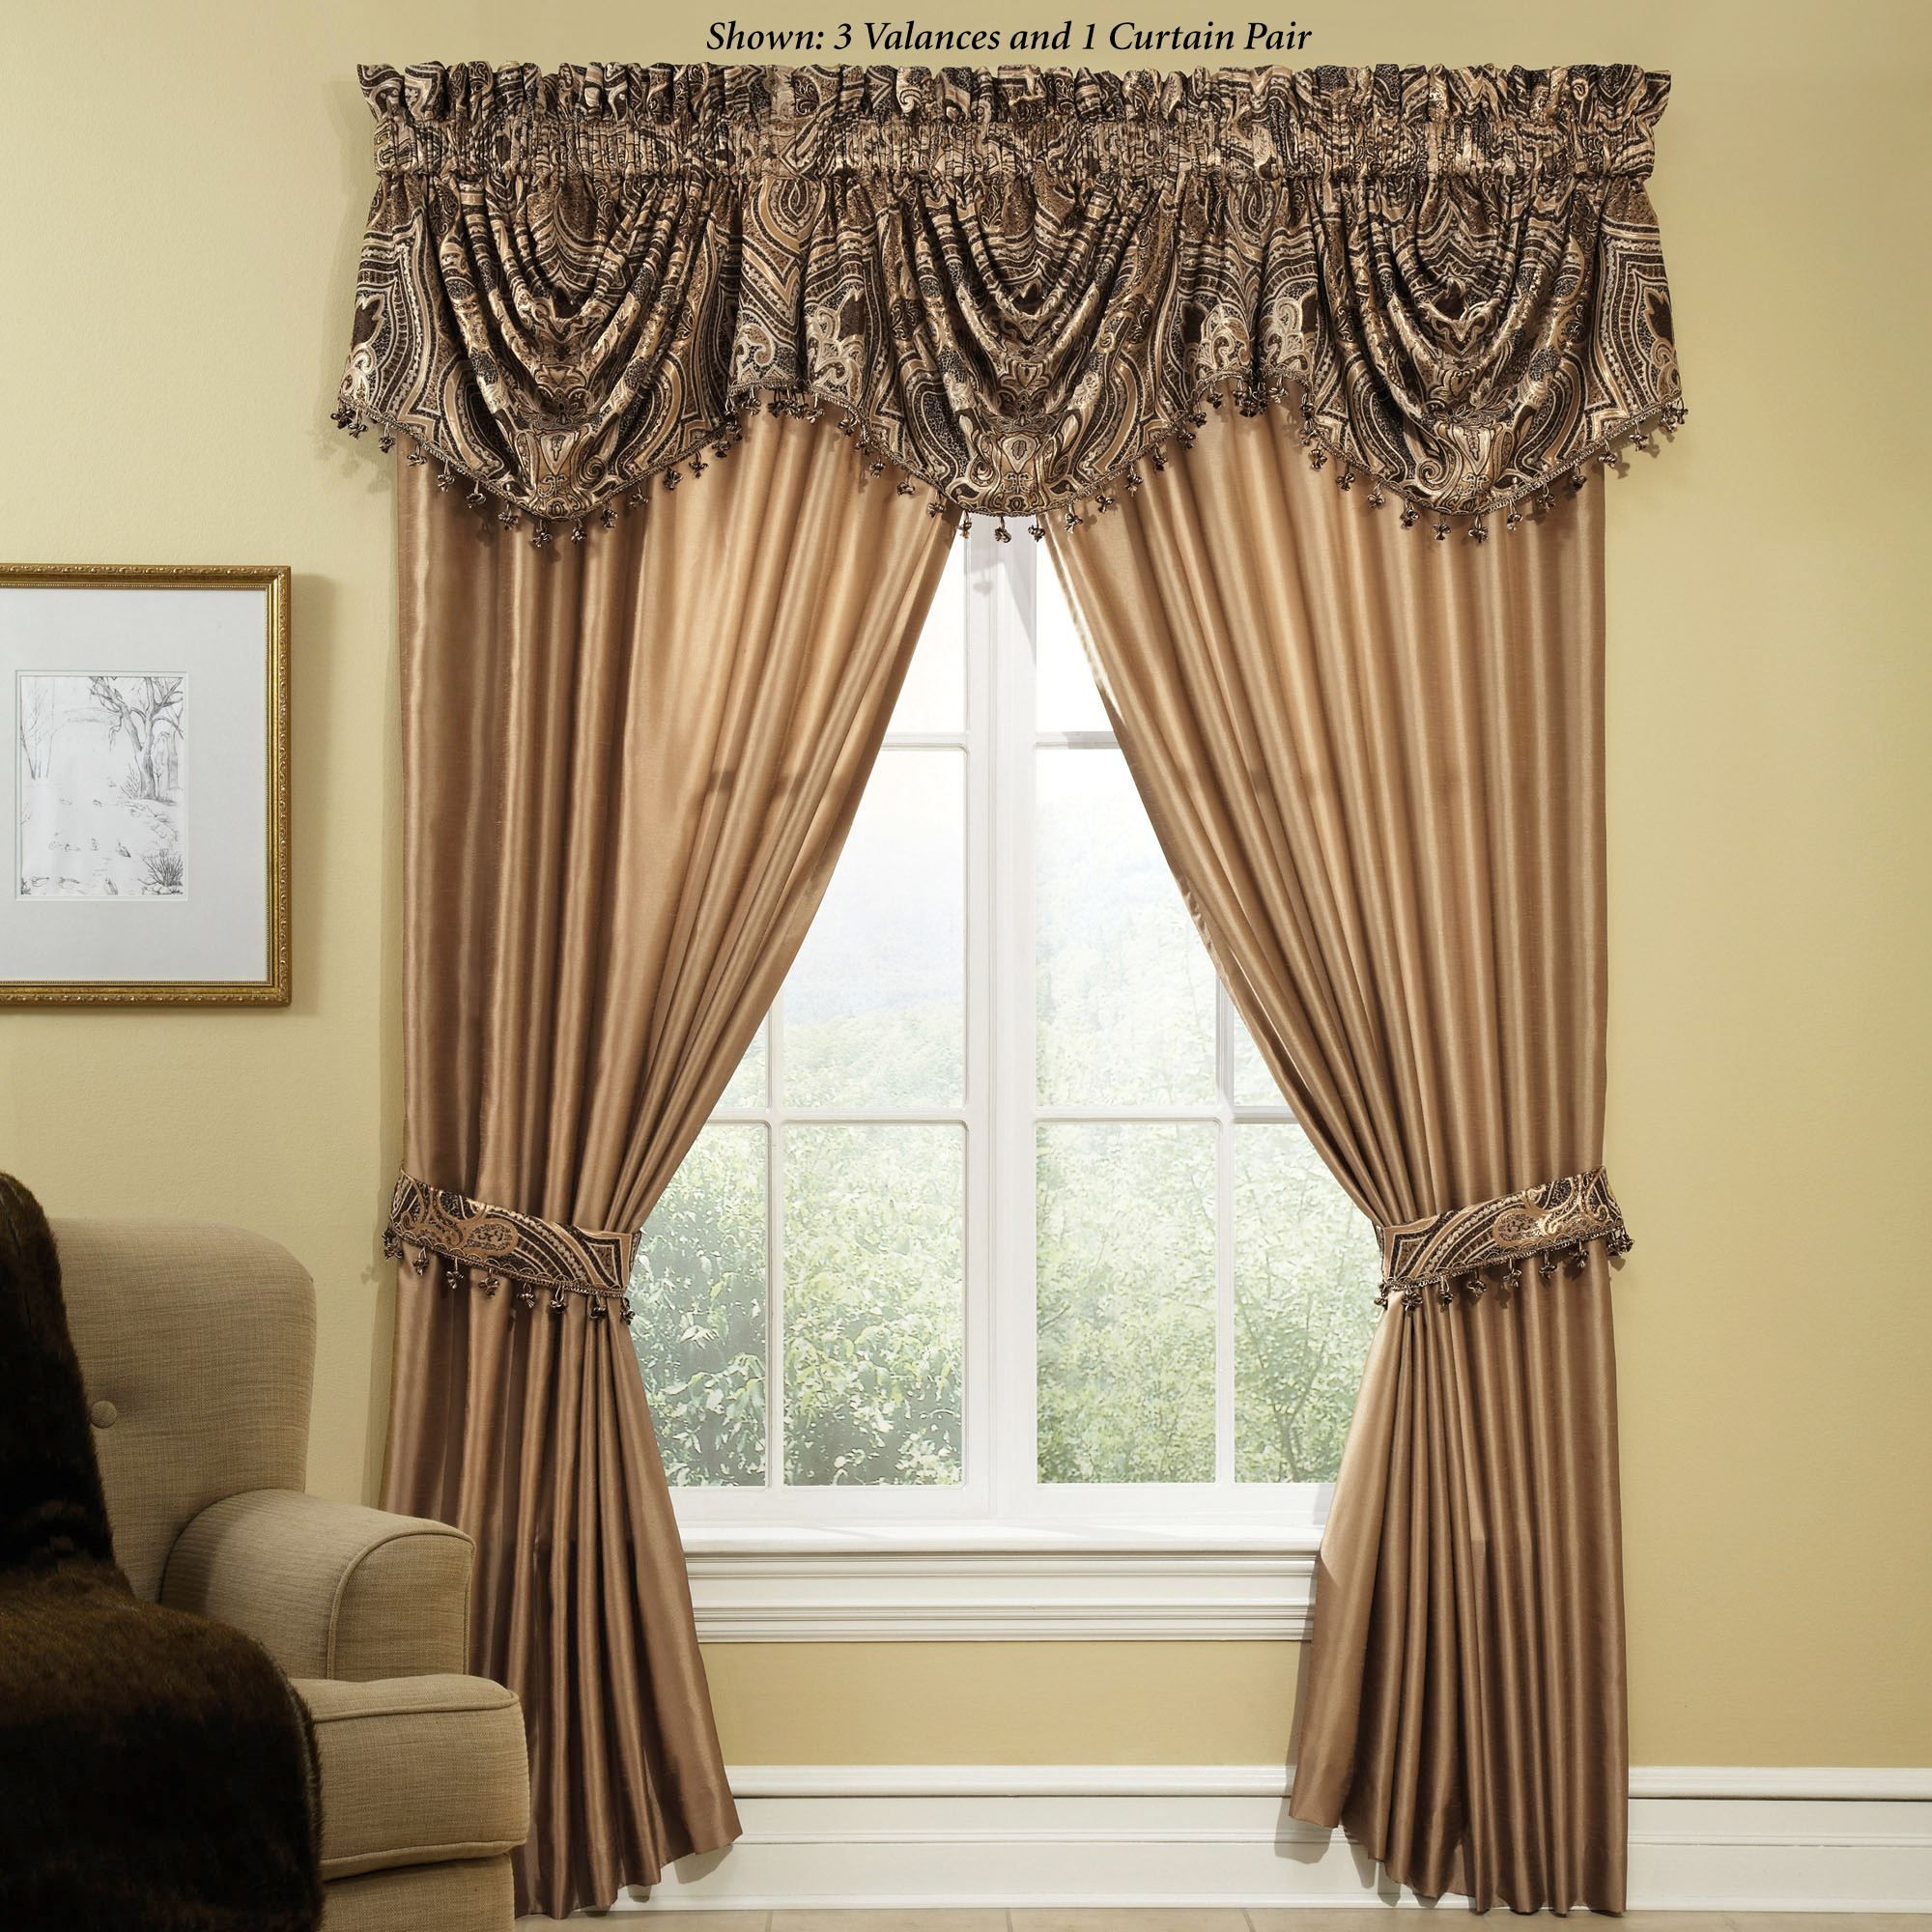 Window treatment ideas for arched windows  maison del ray window treatment by veratex  wide curtains formal